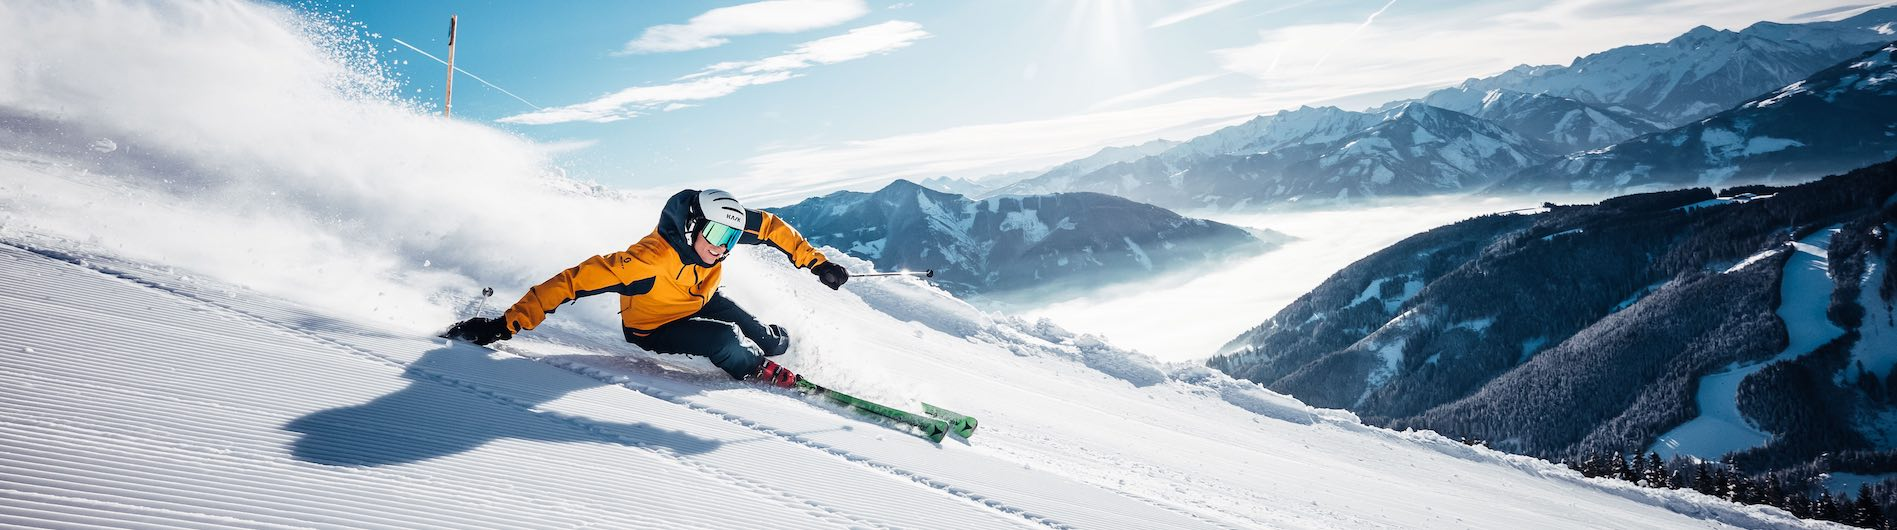 Skischule Zell am See